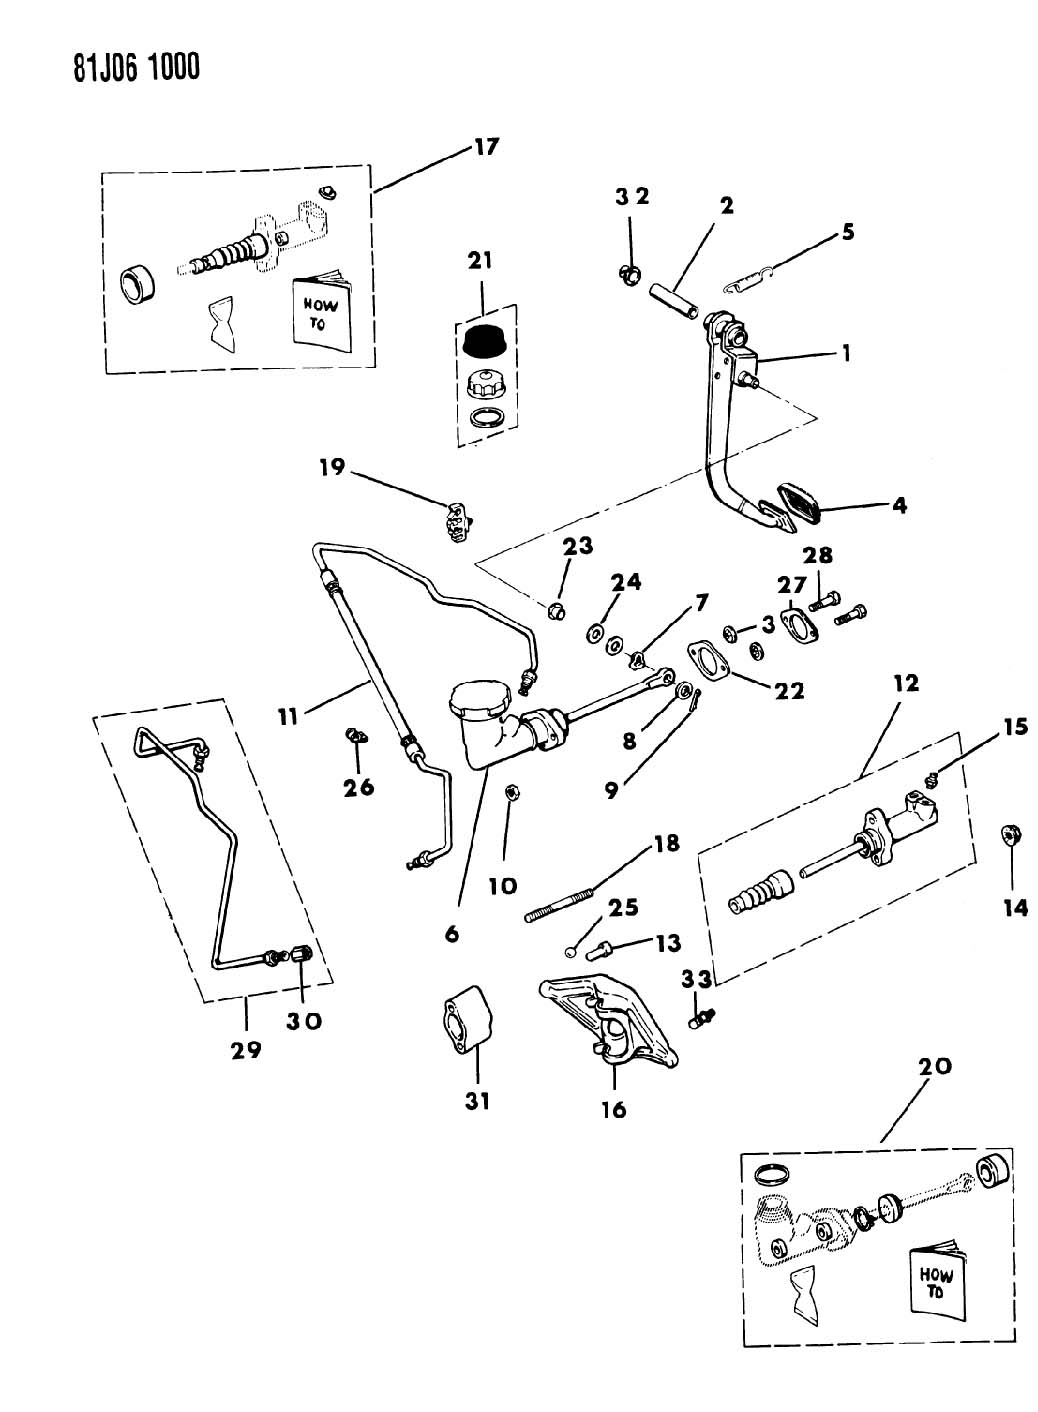 95 Chrysler New Yorker Engine Diagram also 94specs likewise 2mljc 1989 Ford F250 Cranks Will Not Start Replaced Fuel together with 1988 Lincoln Town Car Headlight Switch Wiring Diagram in addition 2lhgv Just Bought 1990 Ford Ranger Xlt Single Cab Speed Wheel. on 1988 ford bronco fuel pump relay location